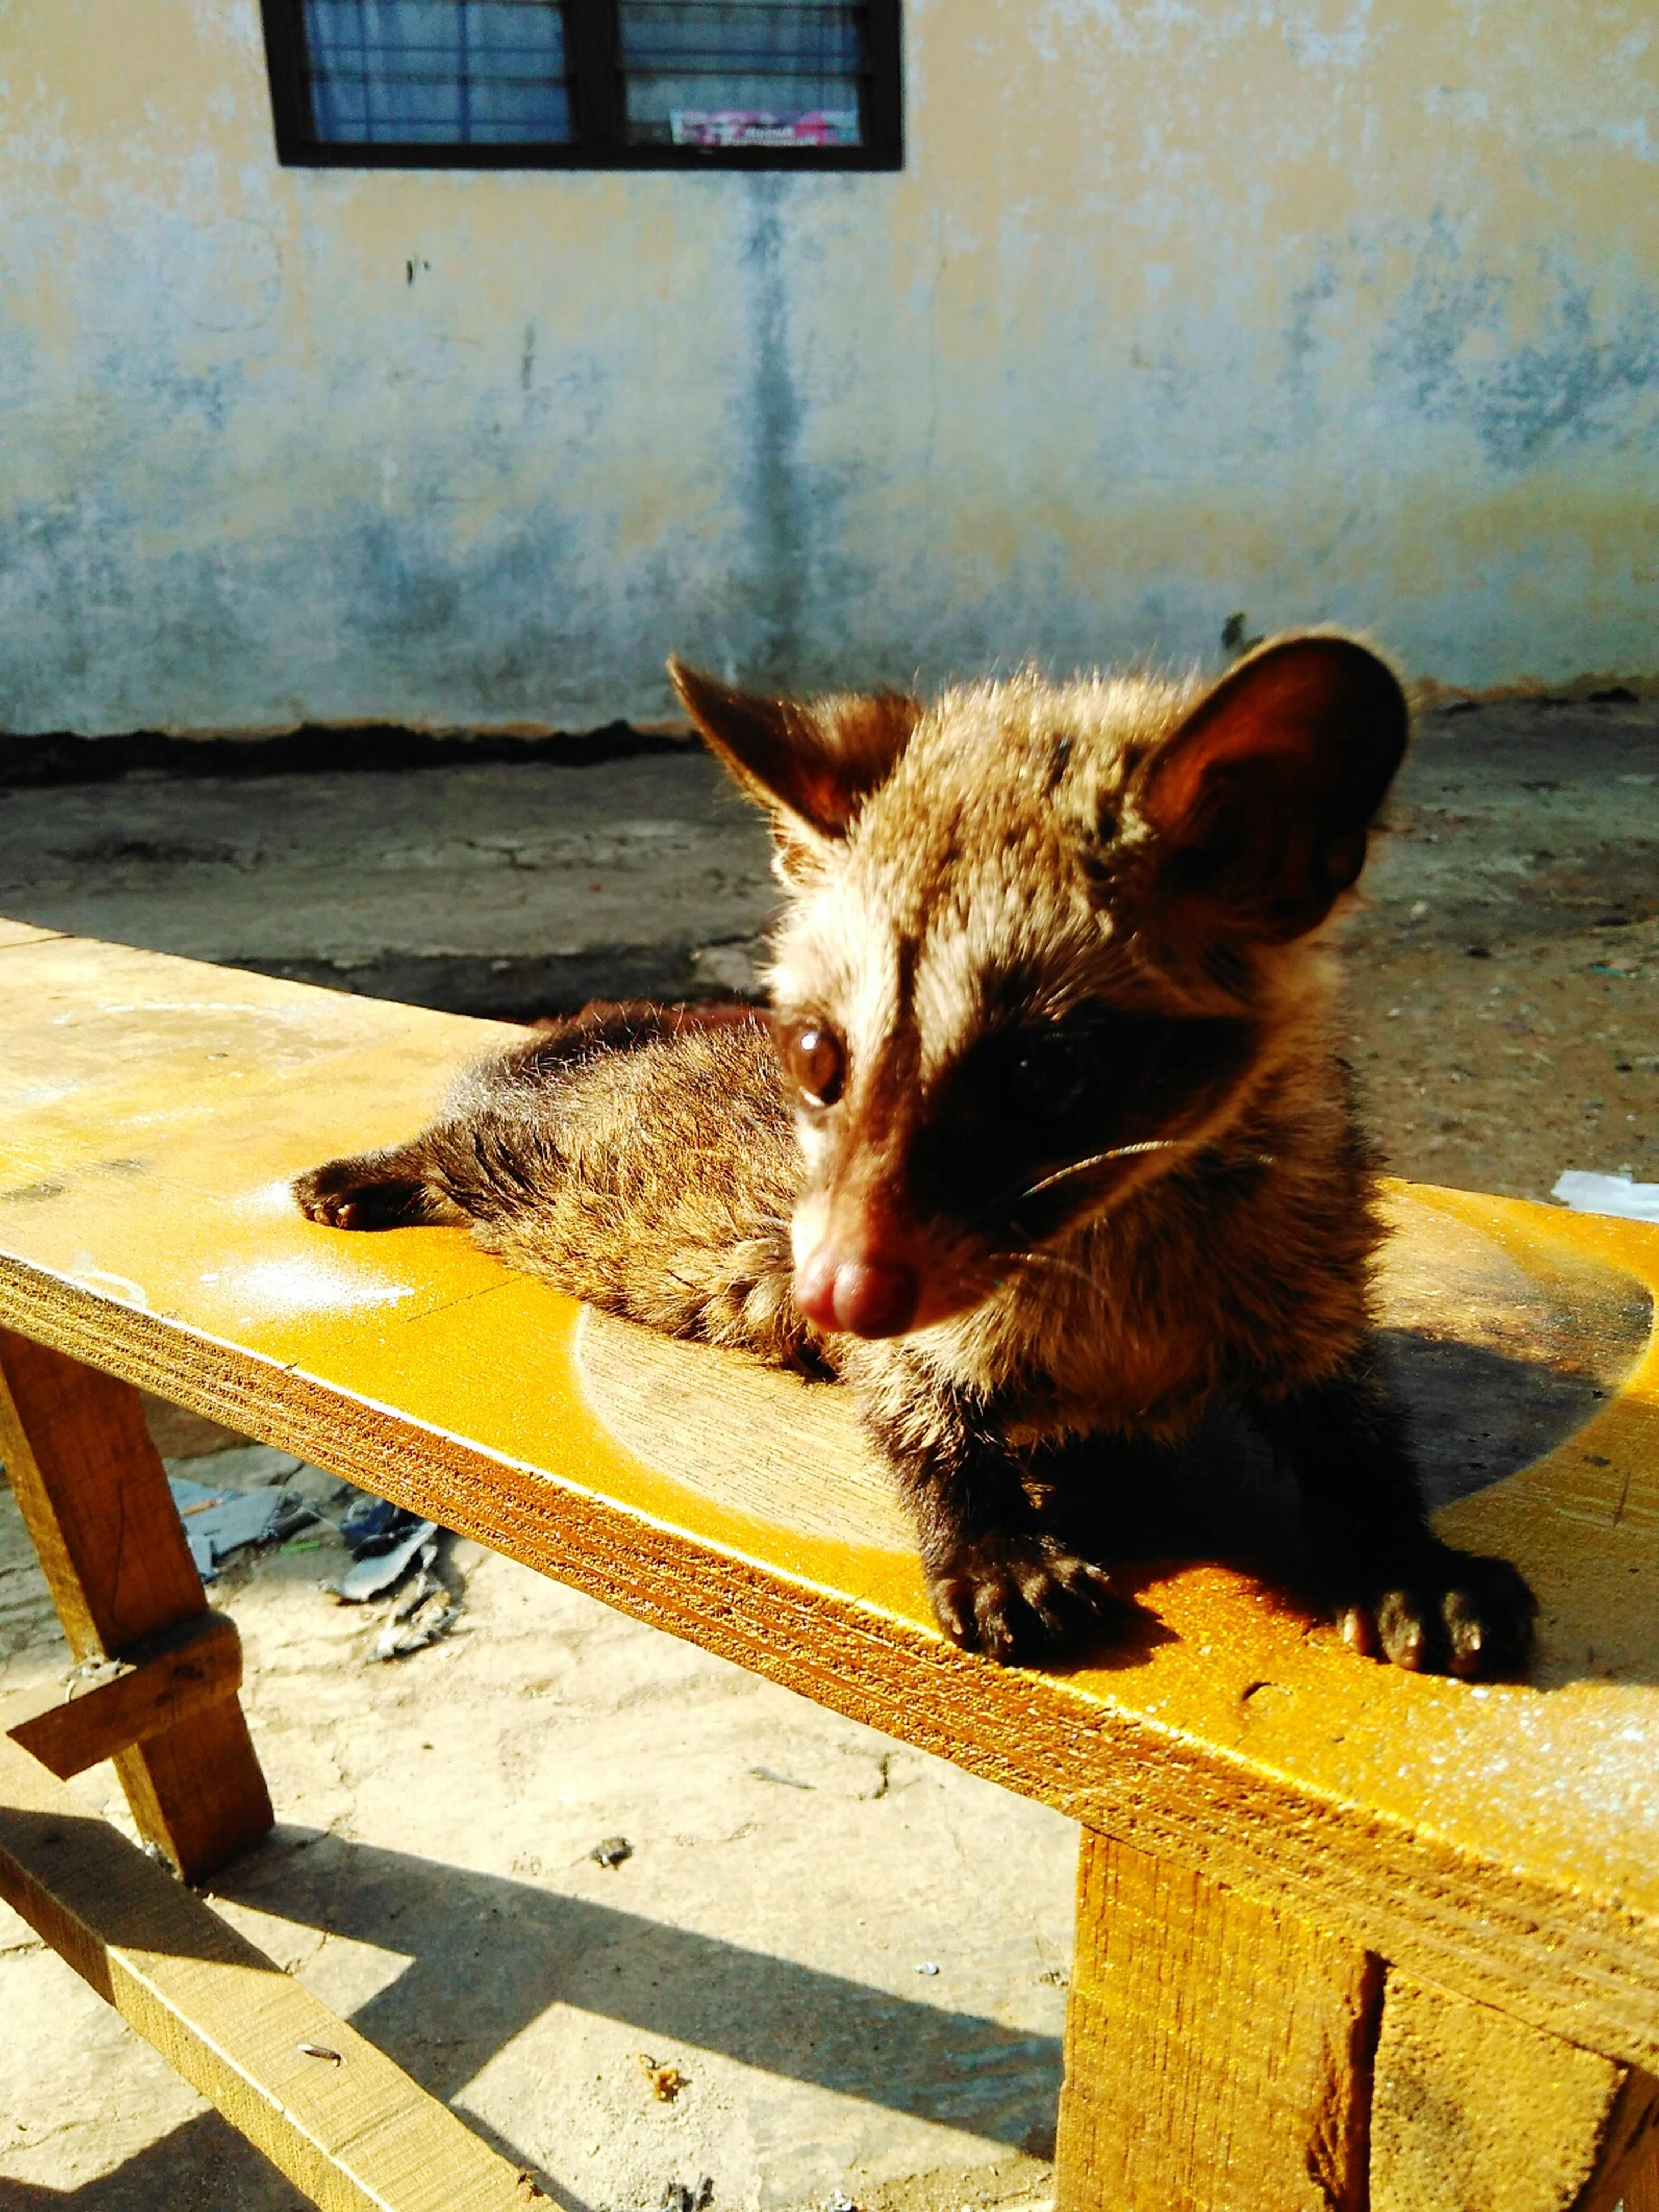 domestic animals, pets, one animal, animal themes, mammal, domestic cat, cat, feline, sitting, whisker, relaxation, sunlight, outdoors, looking away, day, no people, built structure, wood - material, full length, wall - building feature